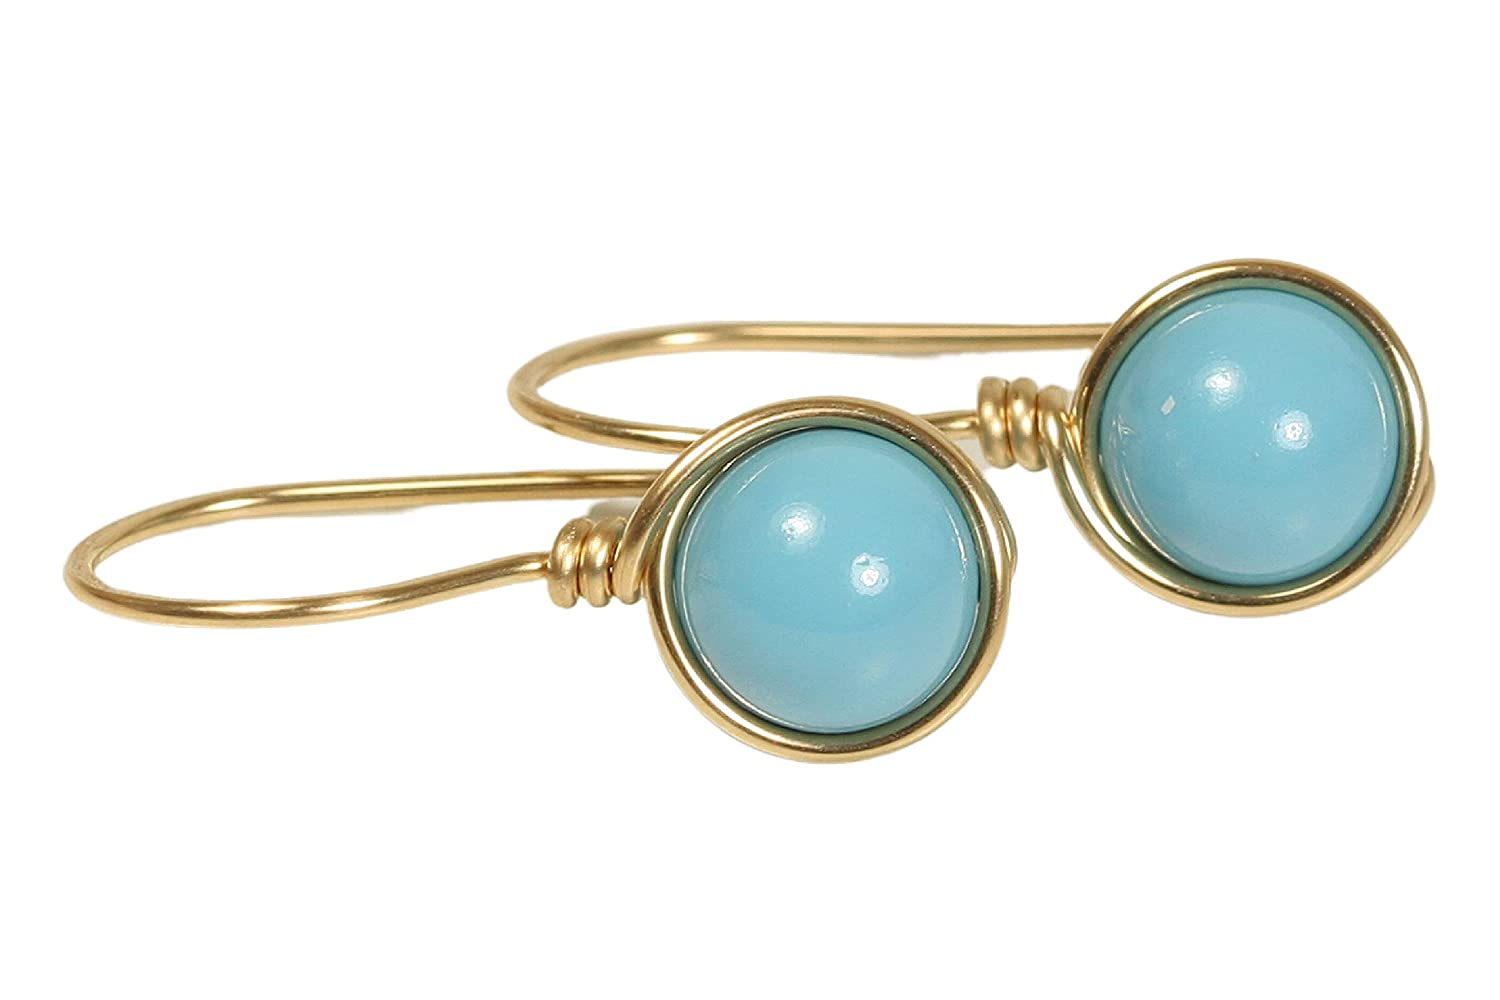 Turquoise Earrings Gold  Gold Filled Moon Earrings  Handmade Jewelry  Turquoise Moon Earrings Gold  14k Gold Filled  Wire Wrapped